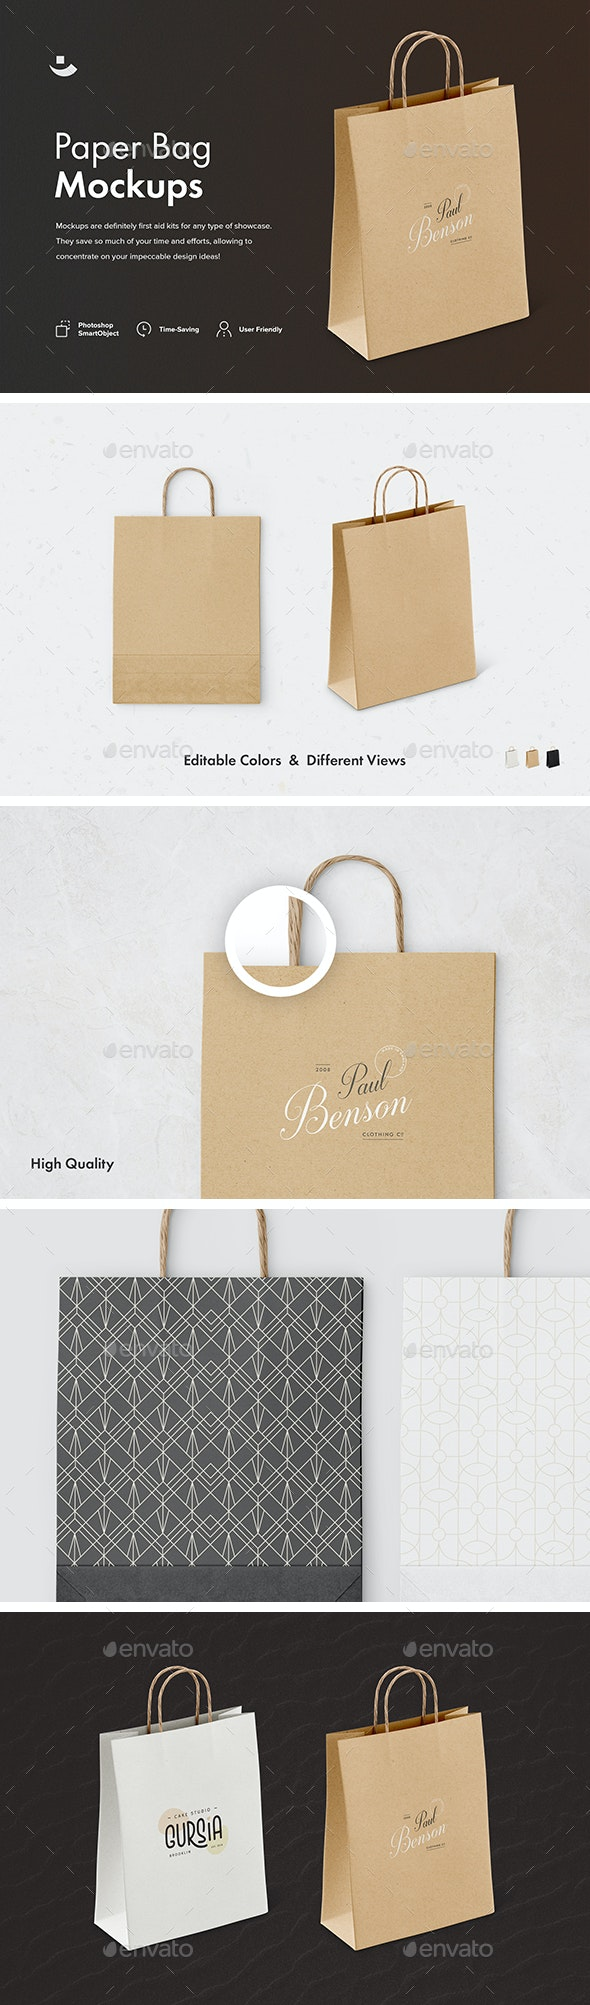 Paper Bag Mockup Set - Packaging Product Mock-Ups